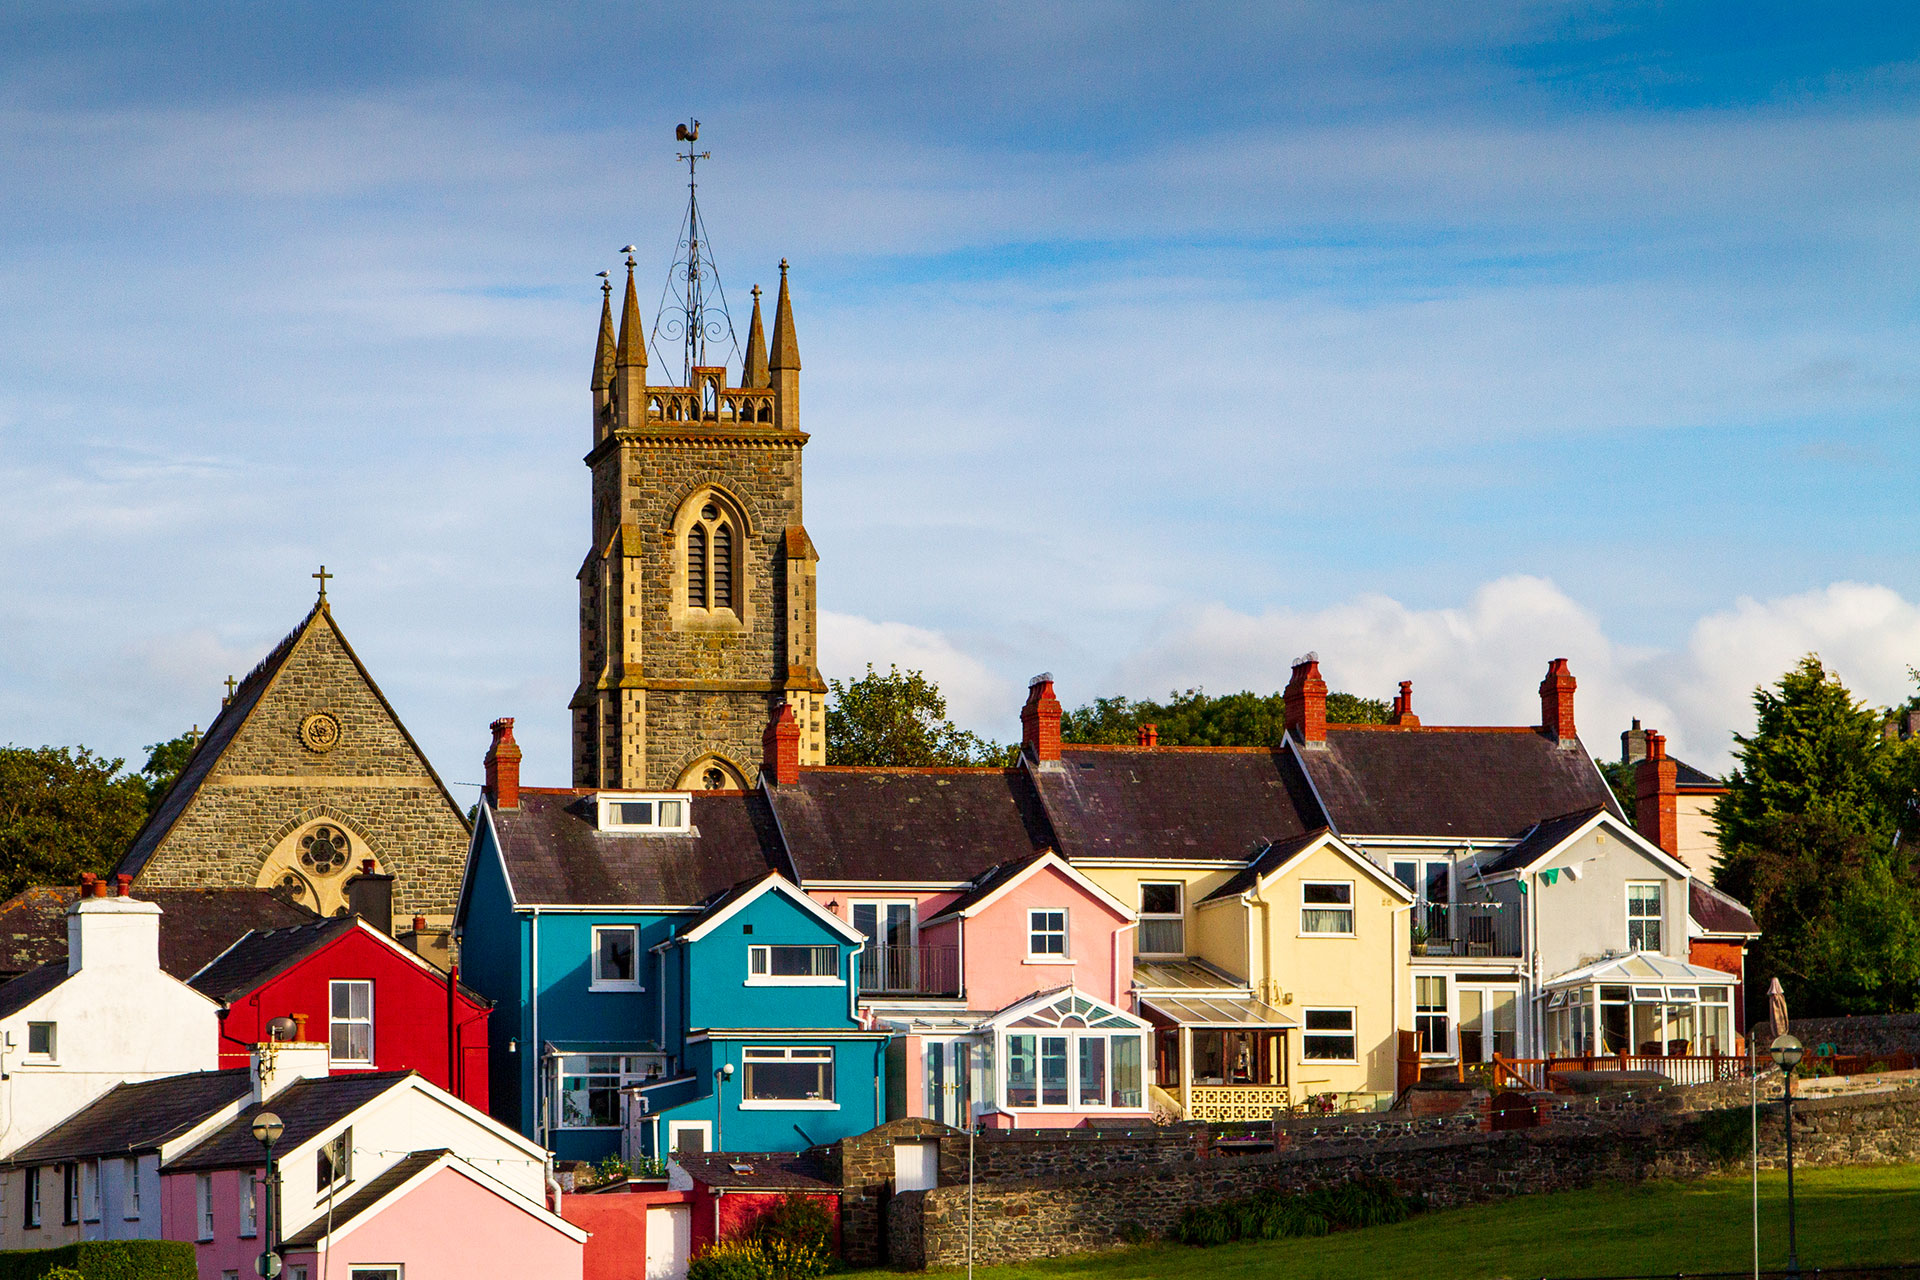 Colorful homes and church tower in Aberaeron, Wales